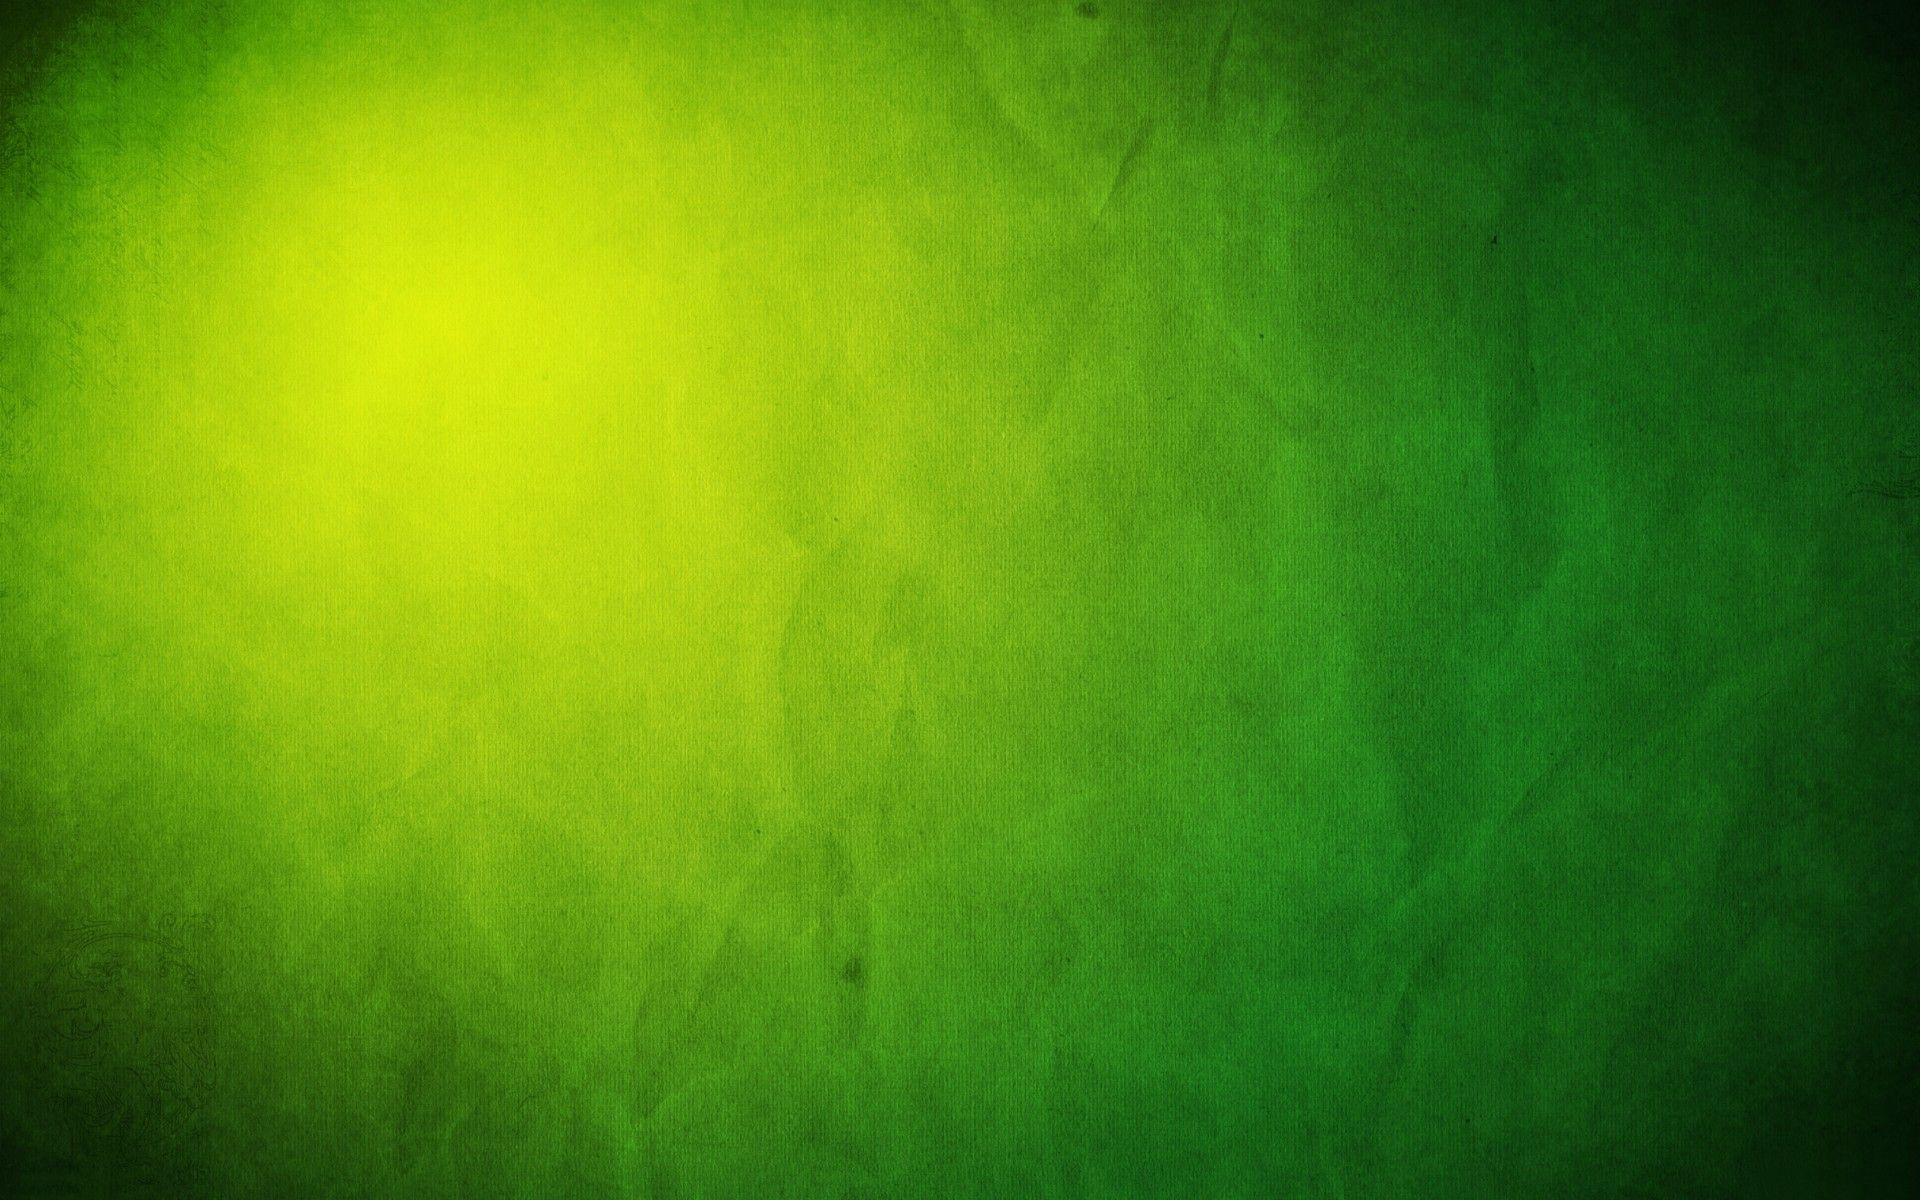 Canvas Shade And Texture Project Green Texture Background Green Backgrounds Green Texture